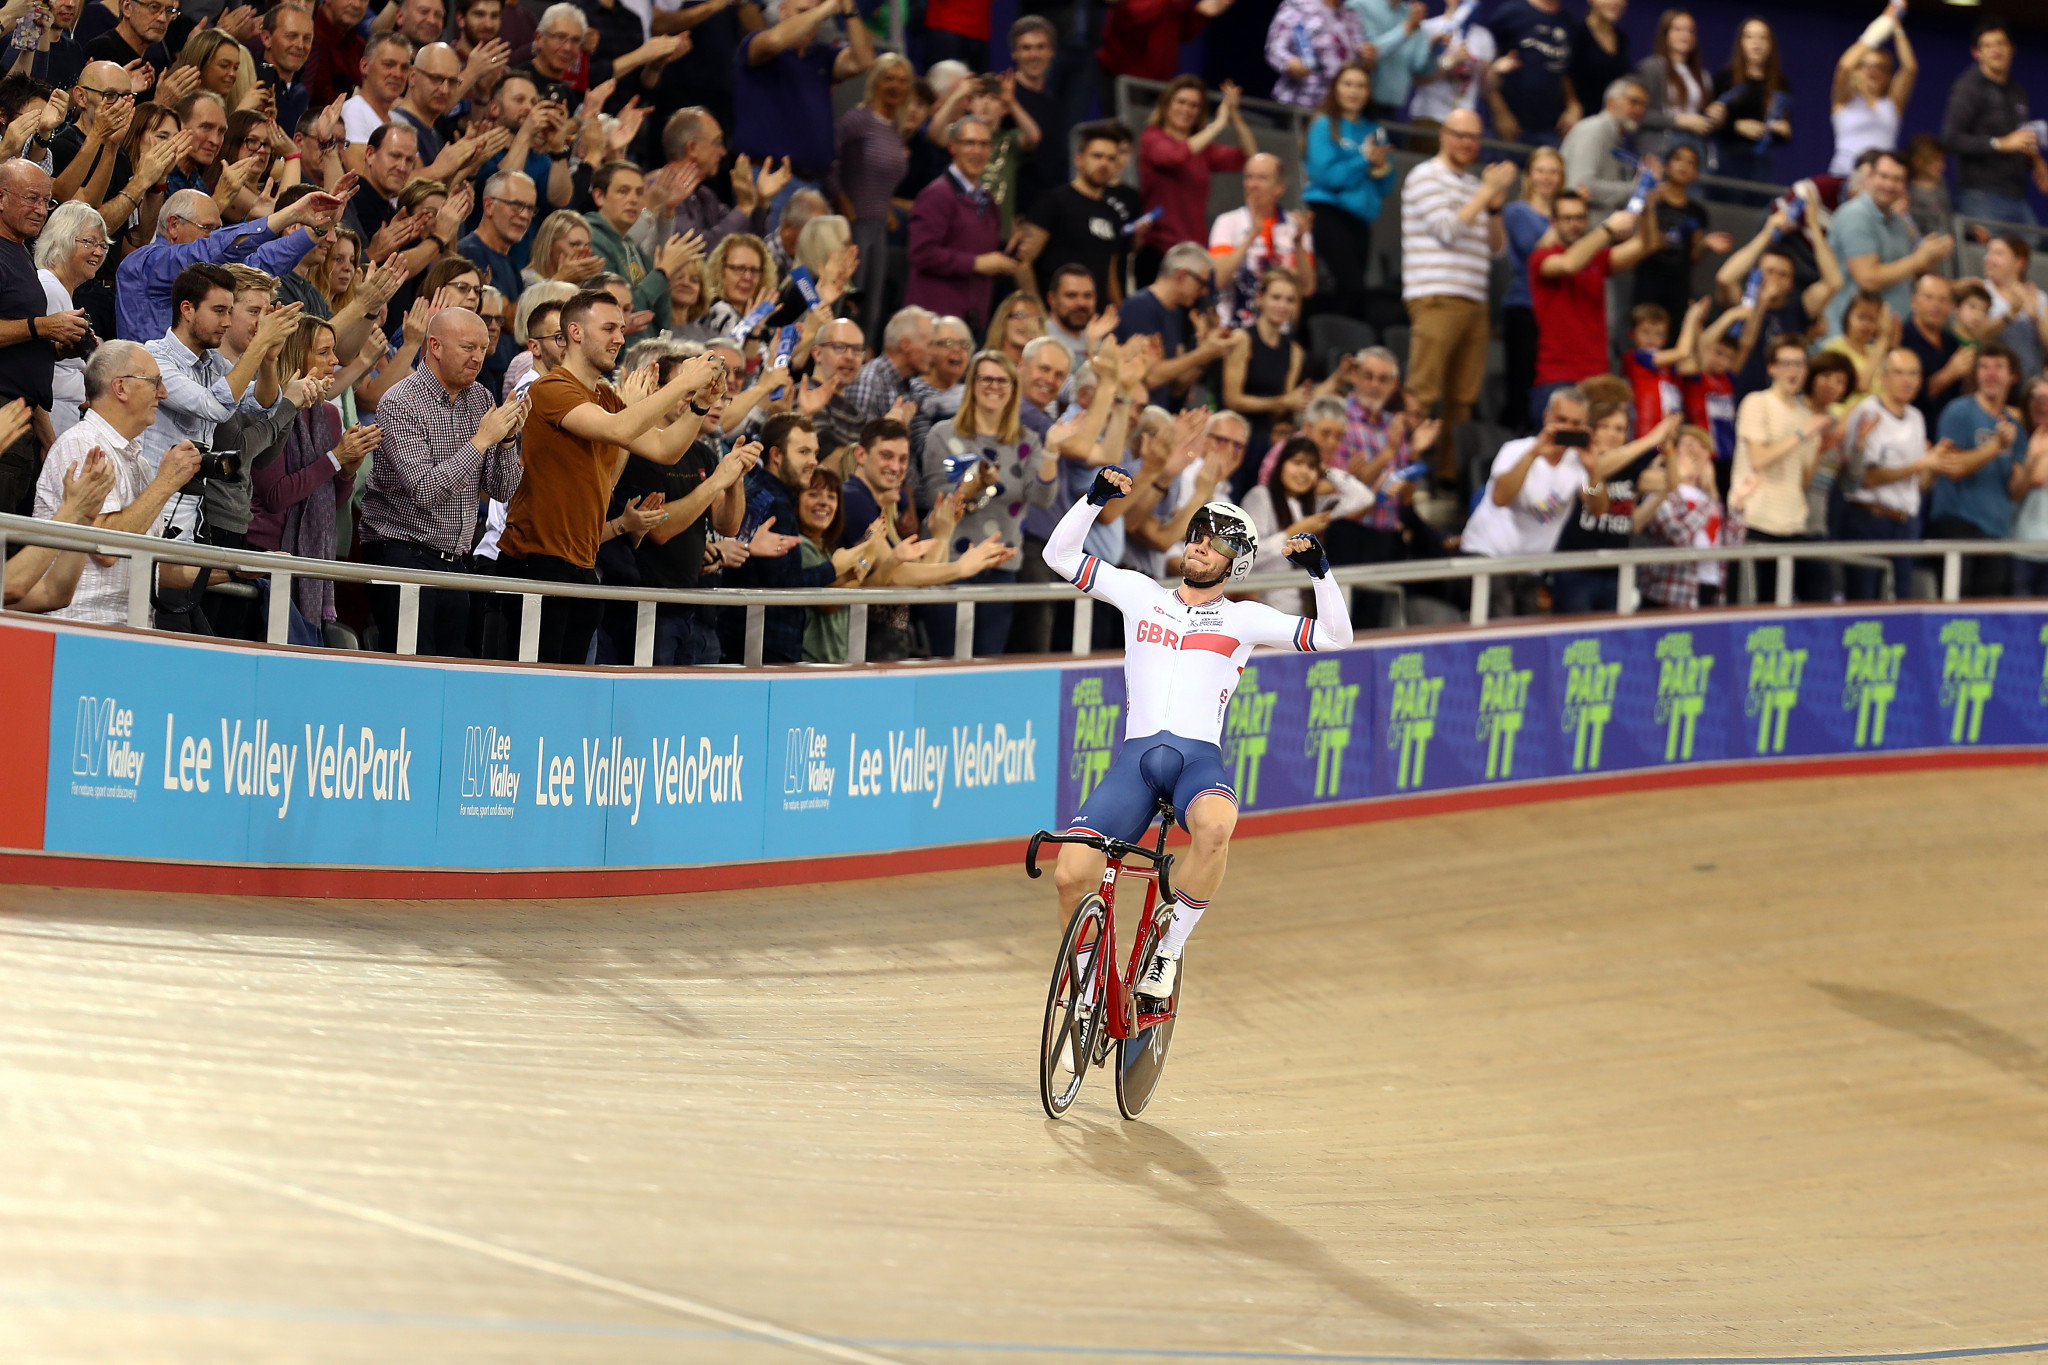 Matthew Walls won the men's omnium as competition drew to a close at the UCI Track World Cup in London ©Getty Images